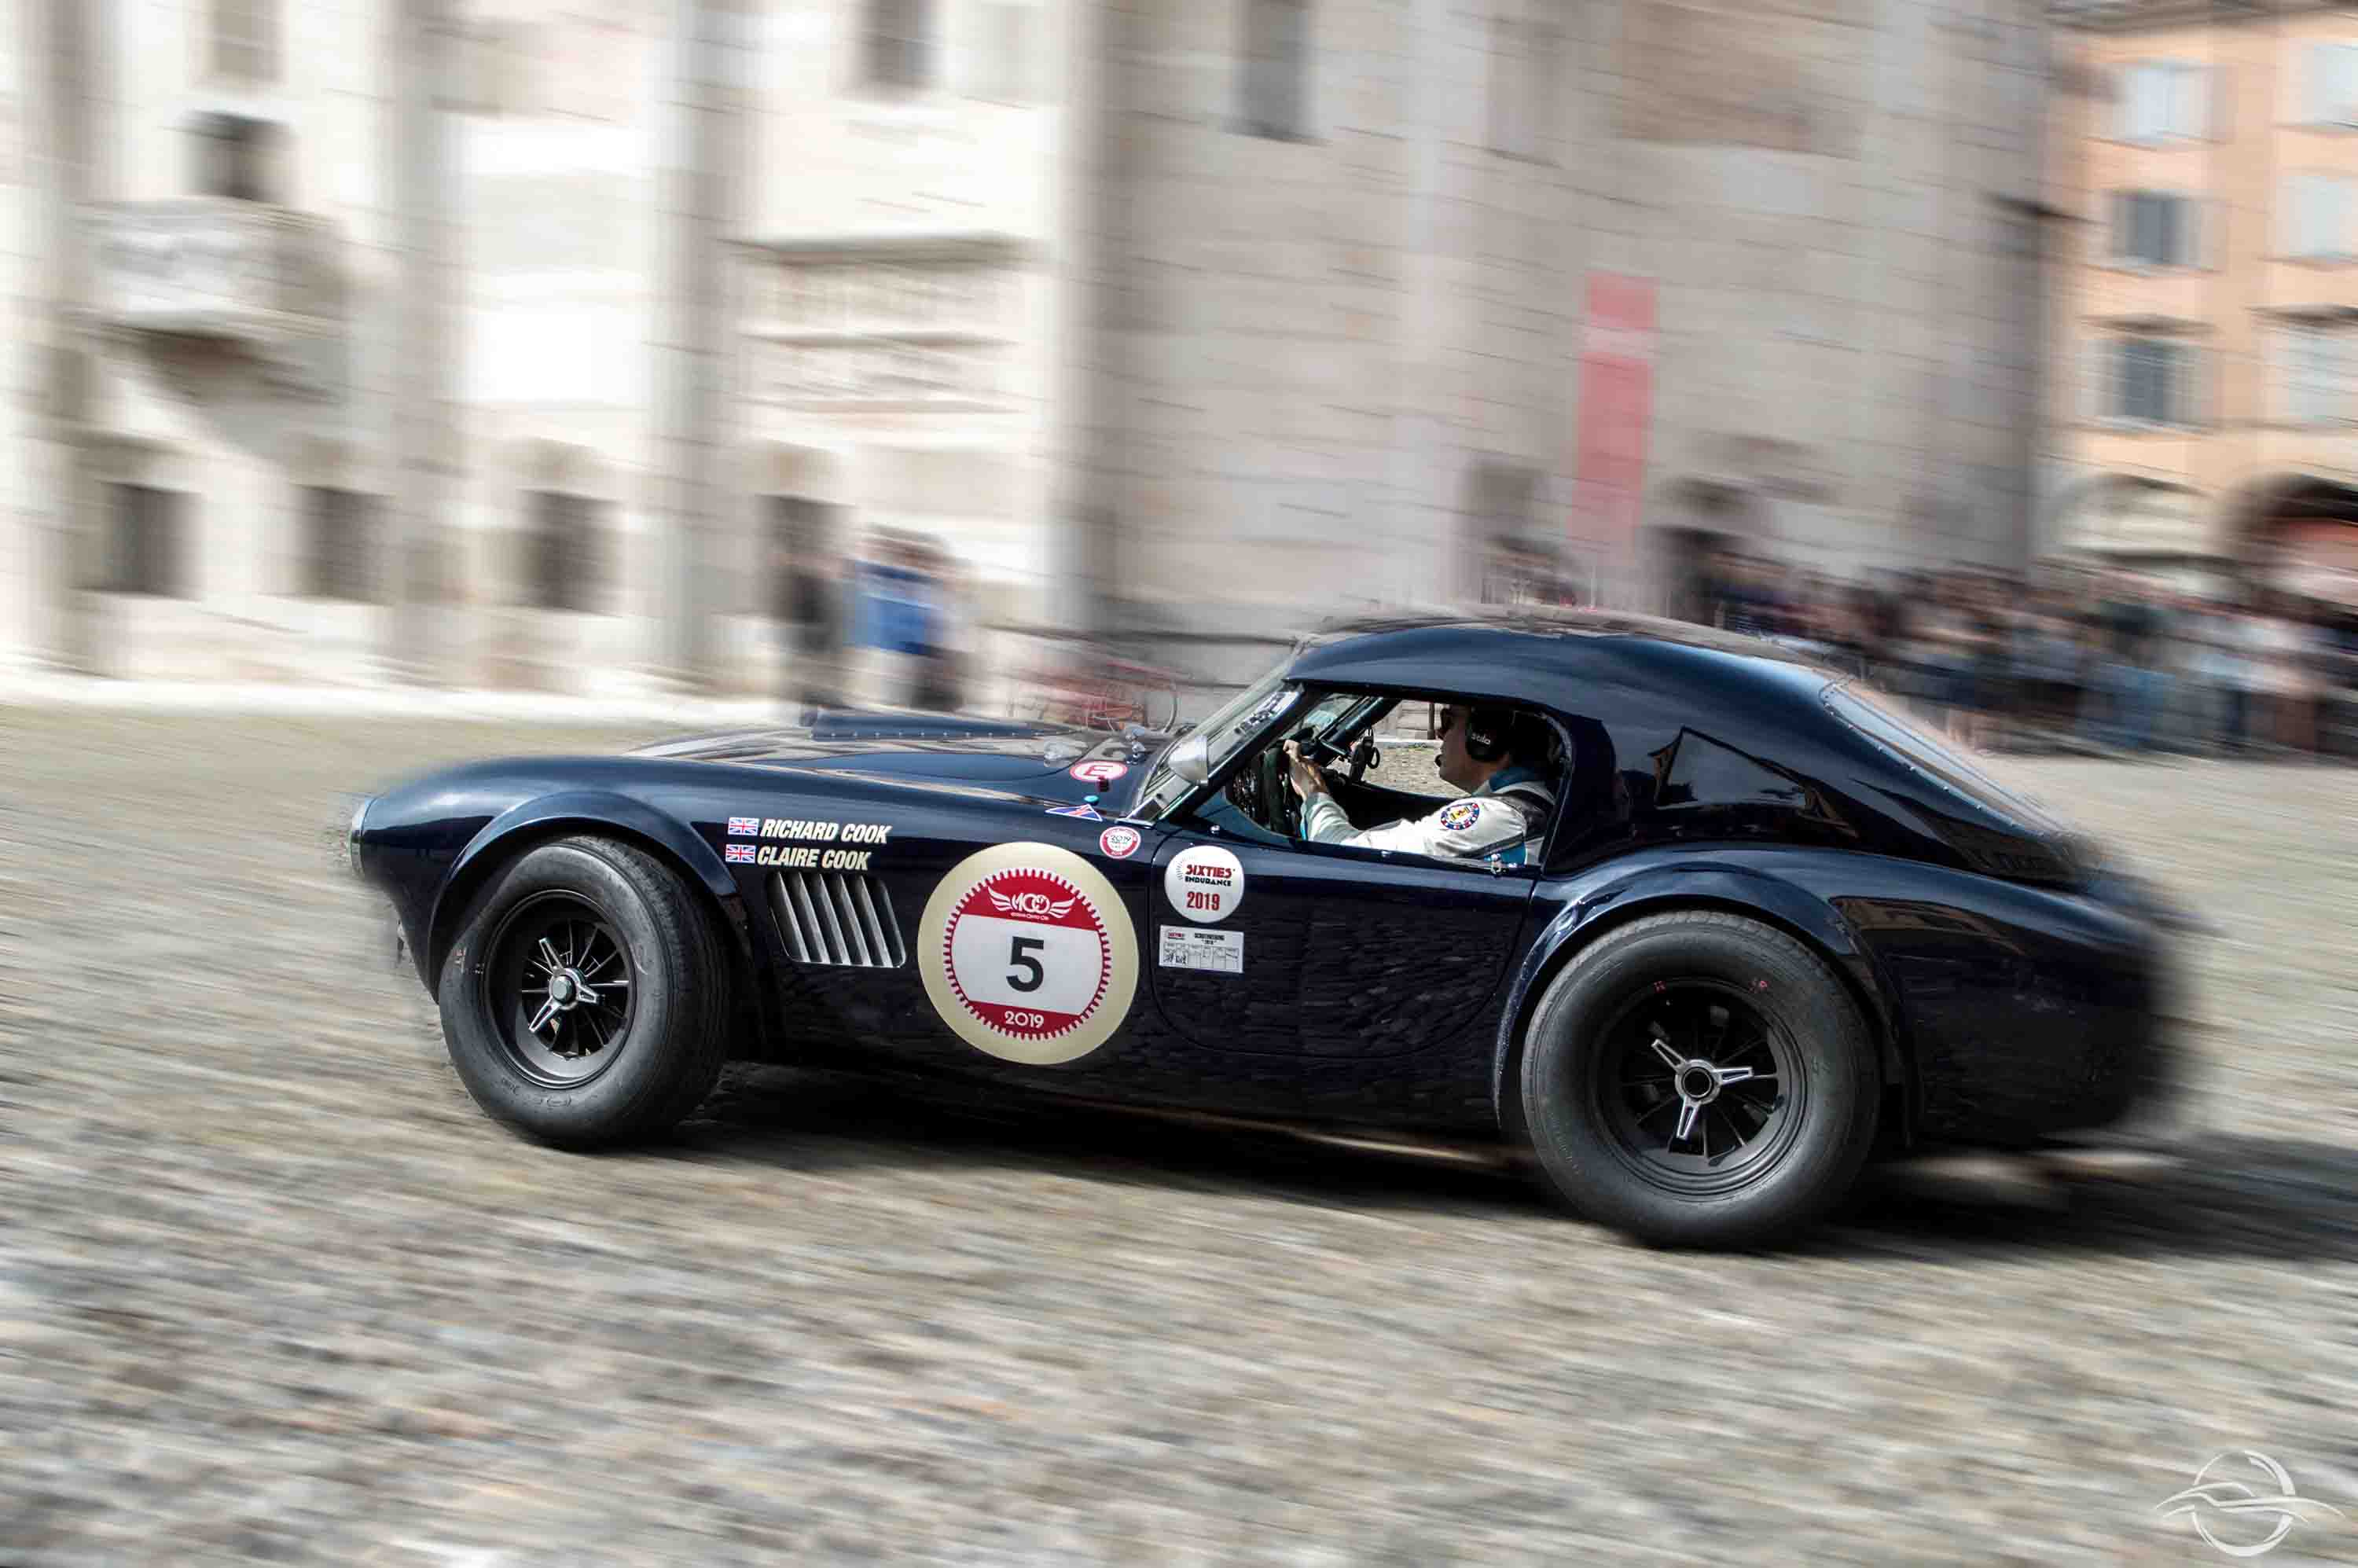 AC Shelby Cobra 289 1963